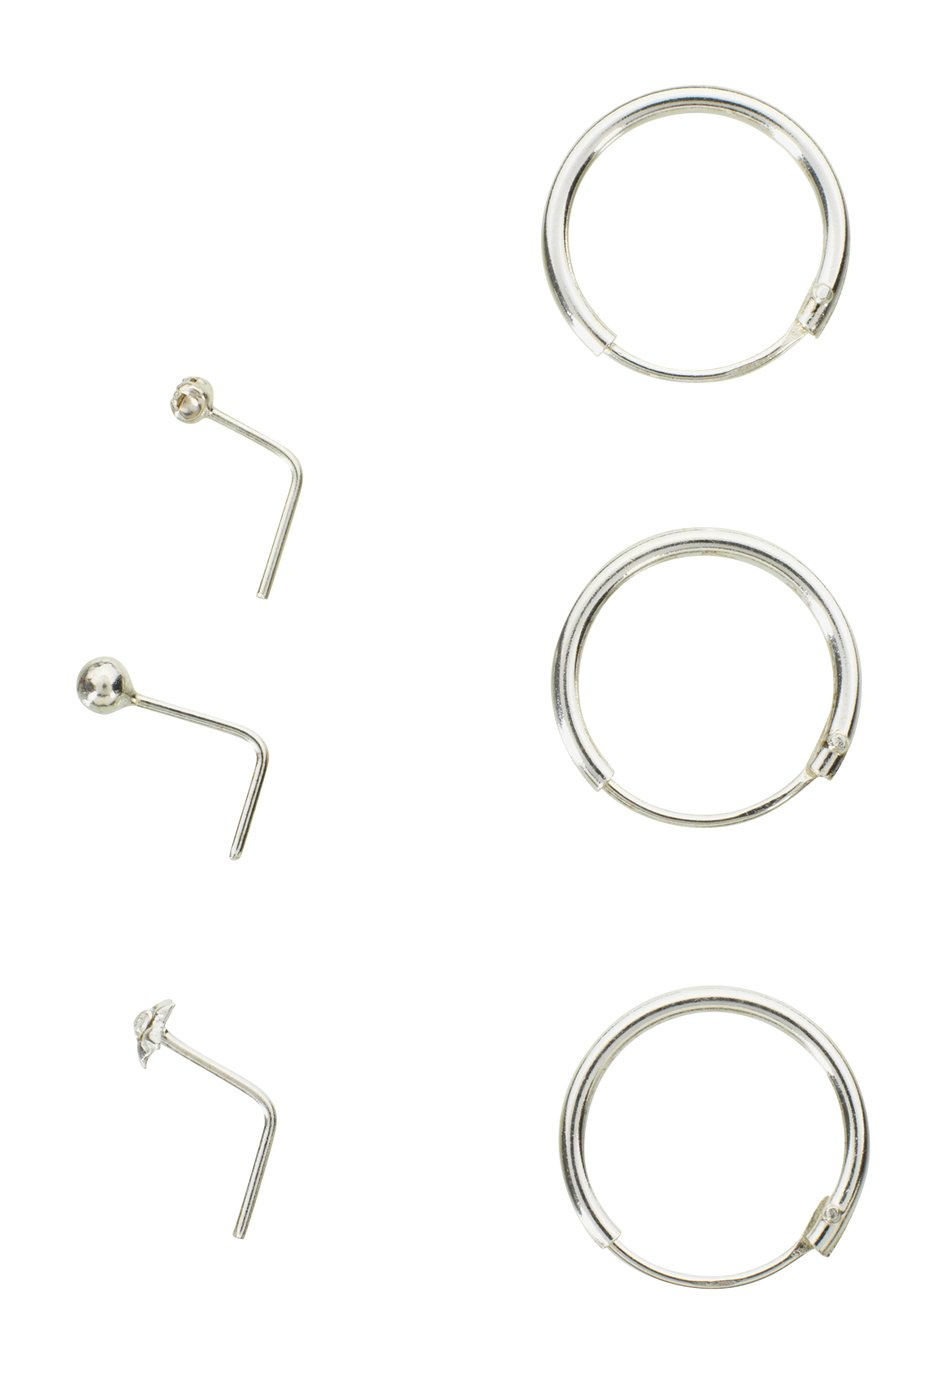 Buy State of Mine Sterling Silver Hoop and Nose Studs Set of 6